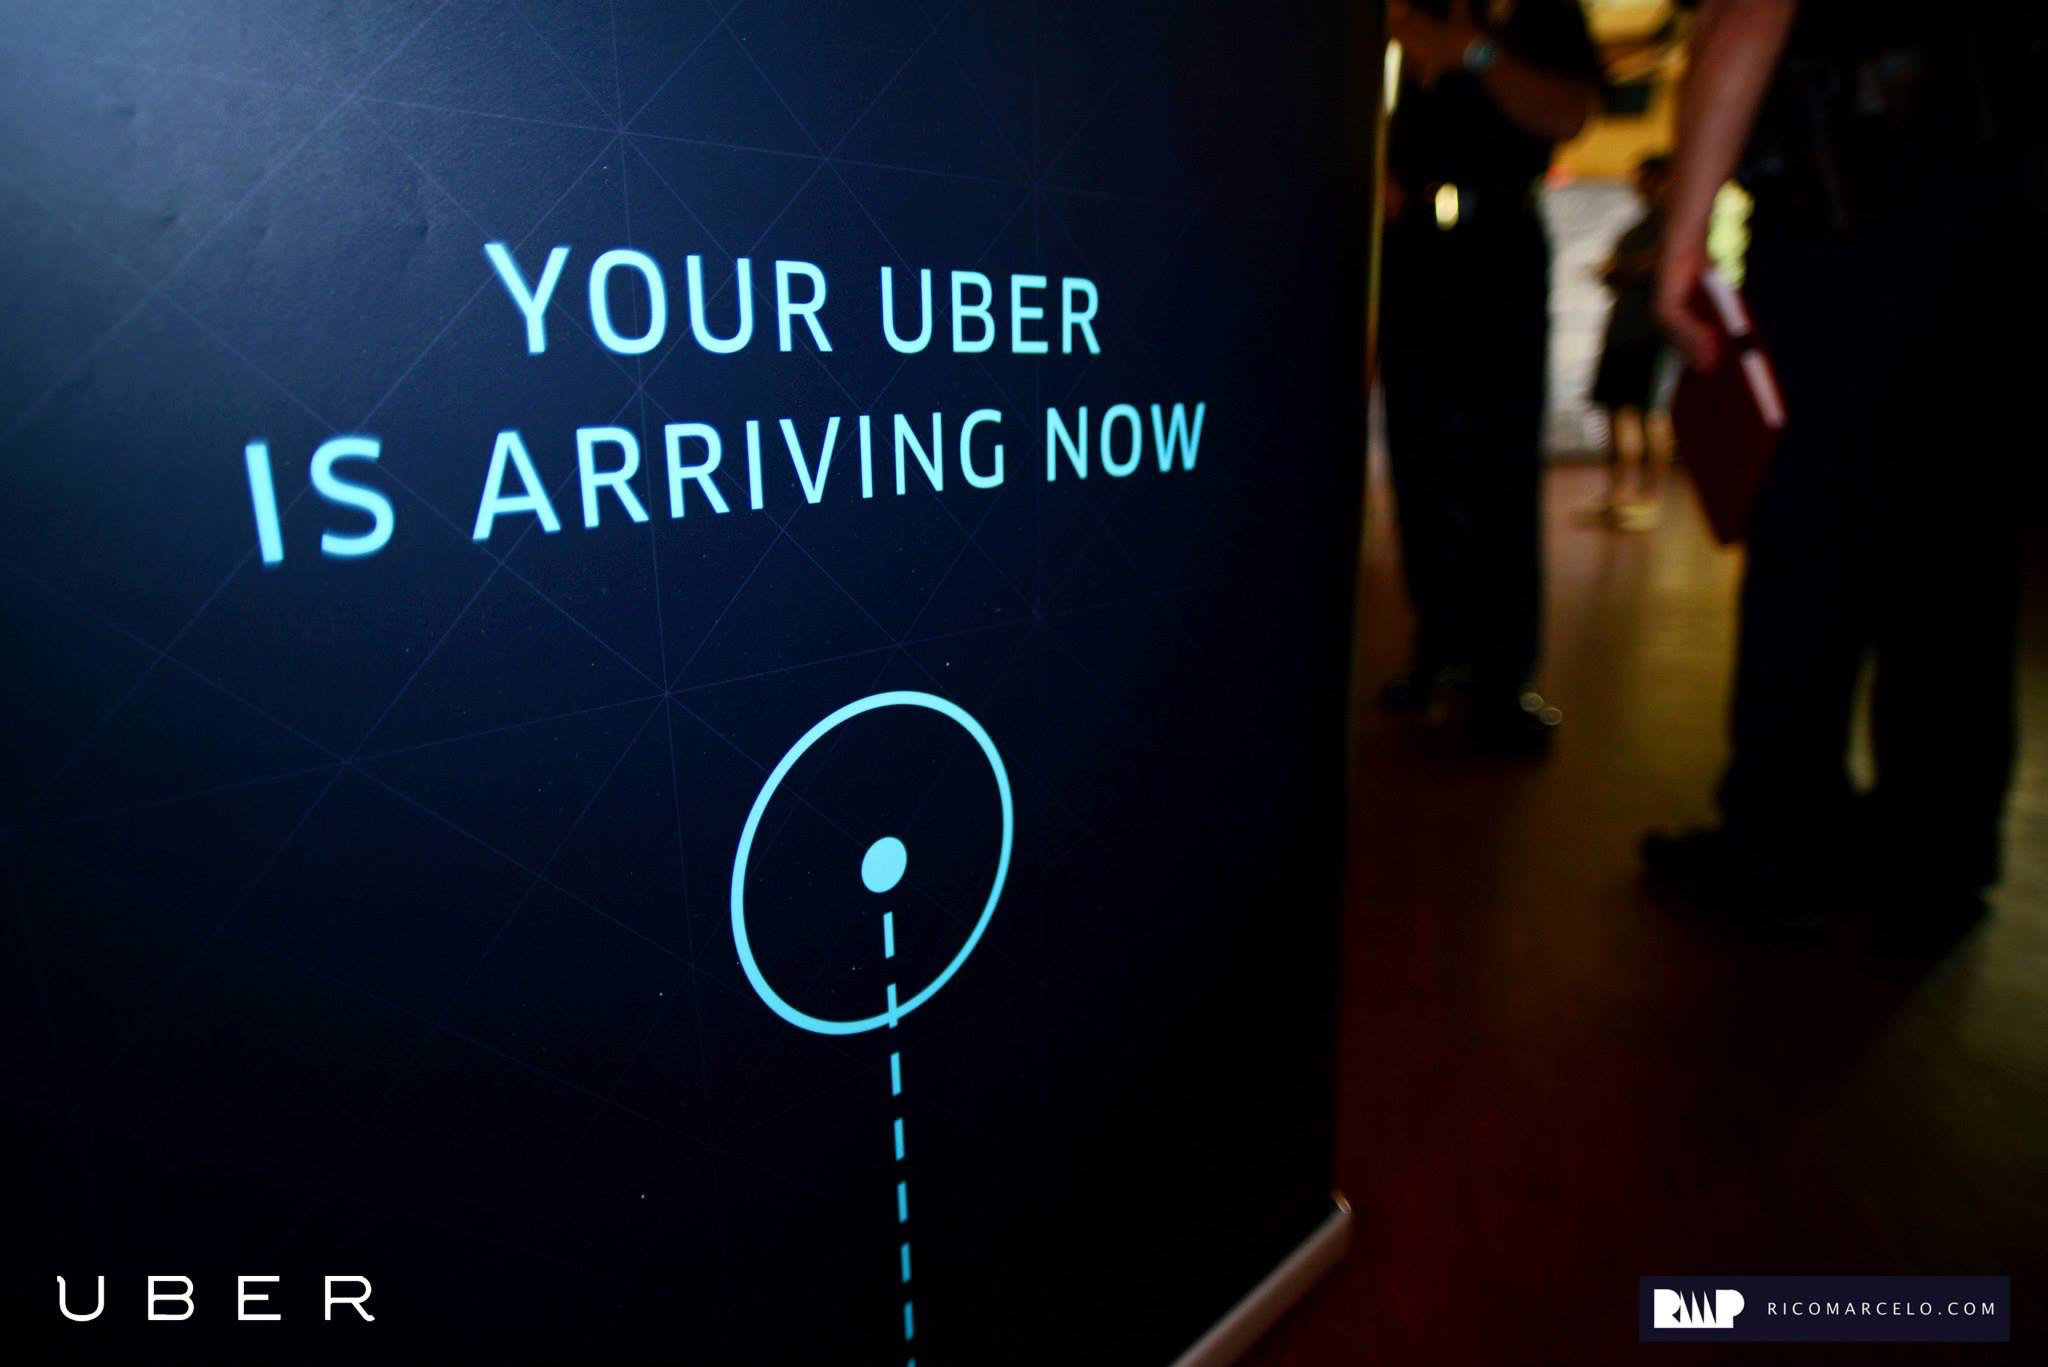 Re-imagining Customer Journeys, the Uber way